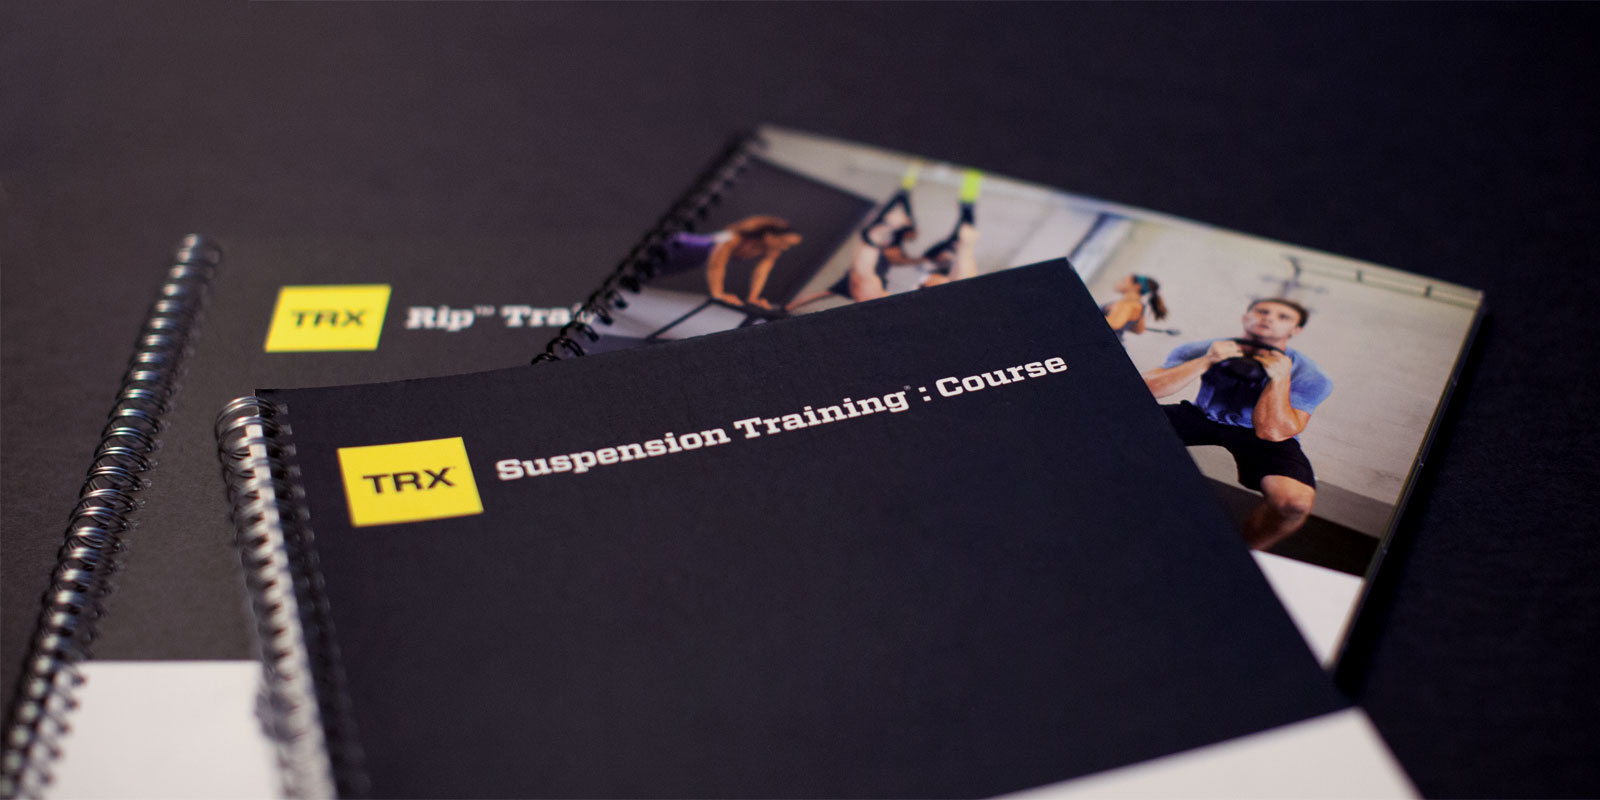 TRX Suspension Training Courses